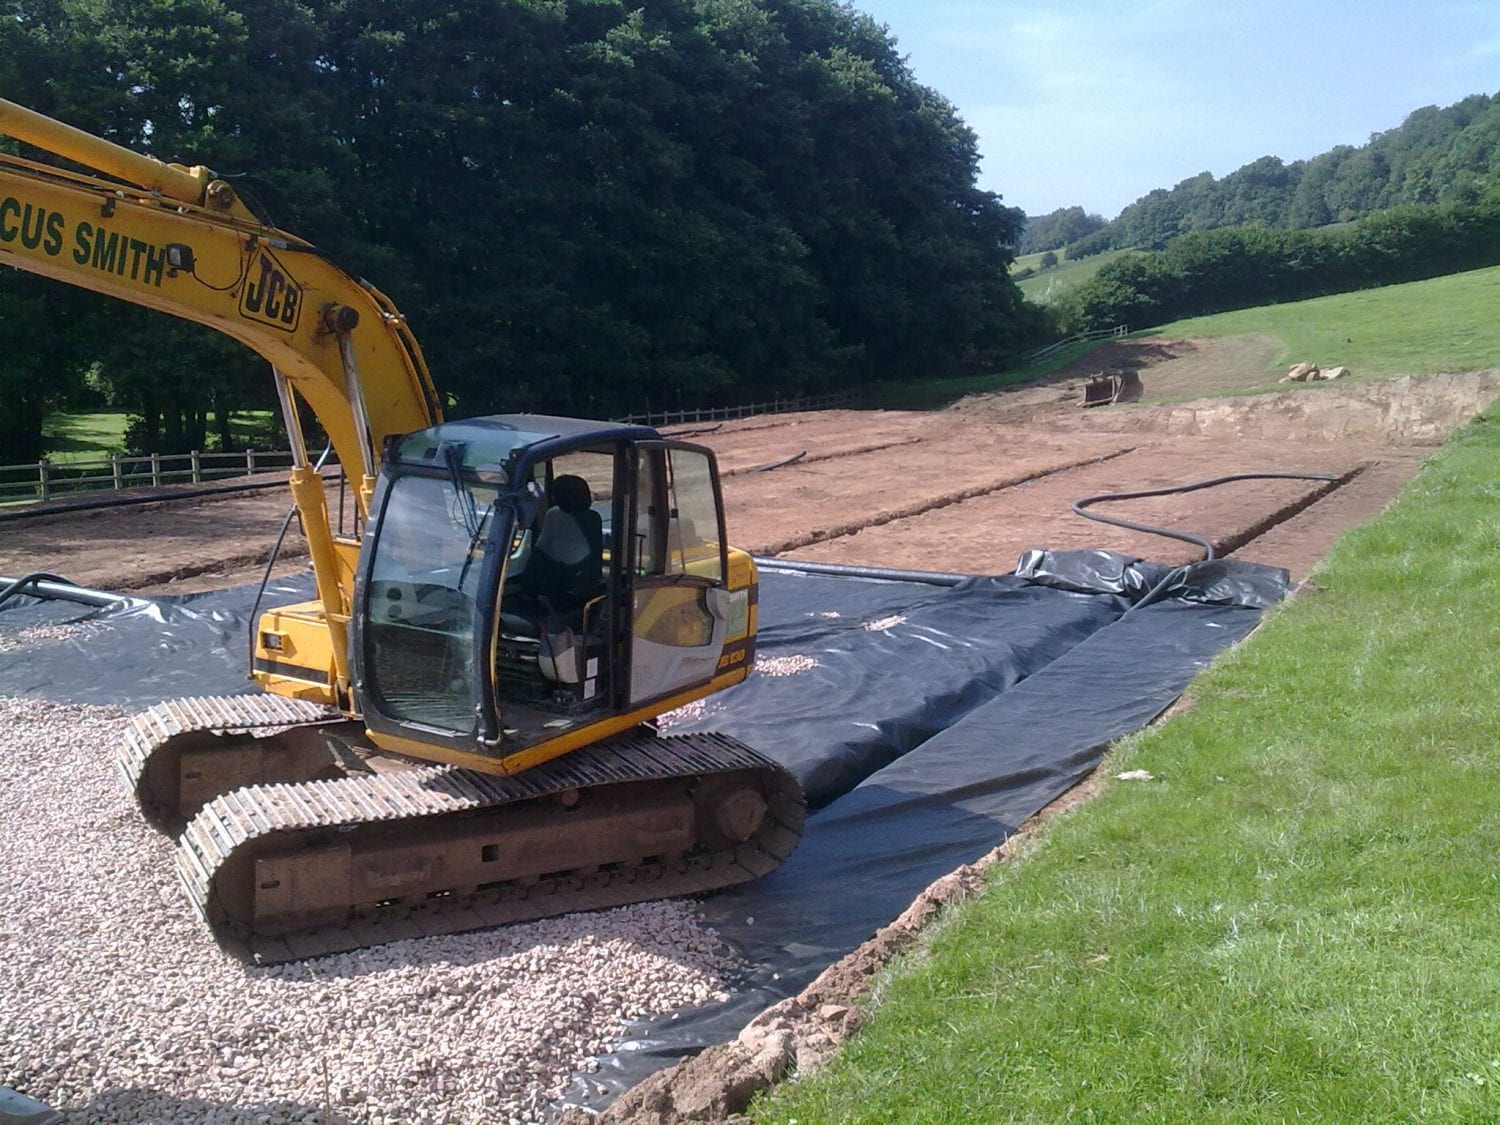 Outdoor horse arena under construction in Gloucestershire.